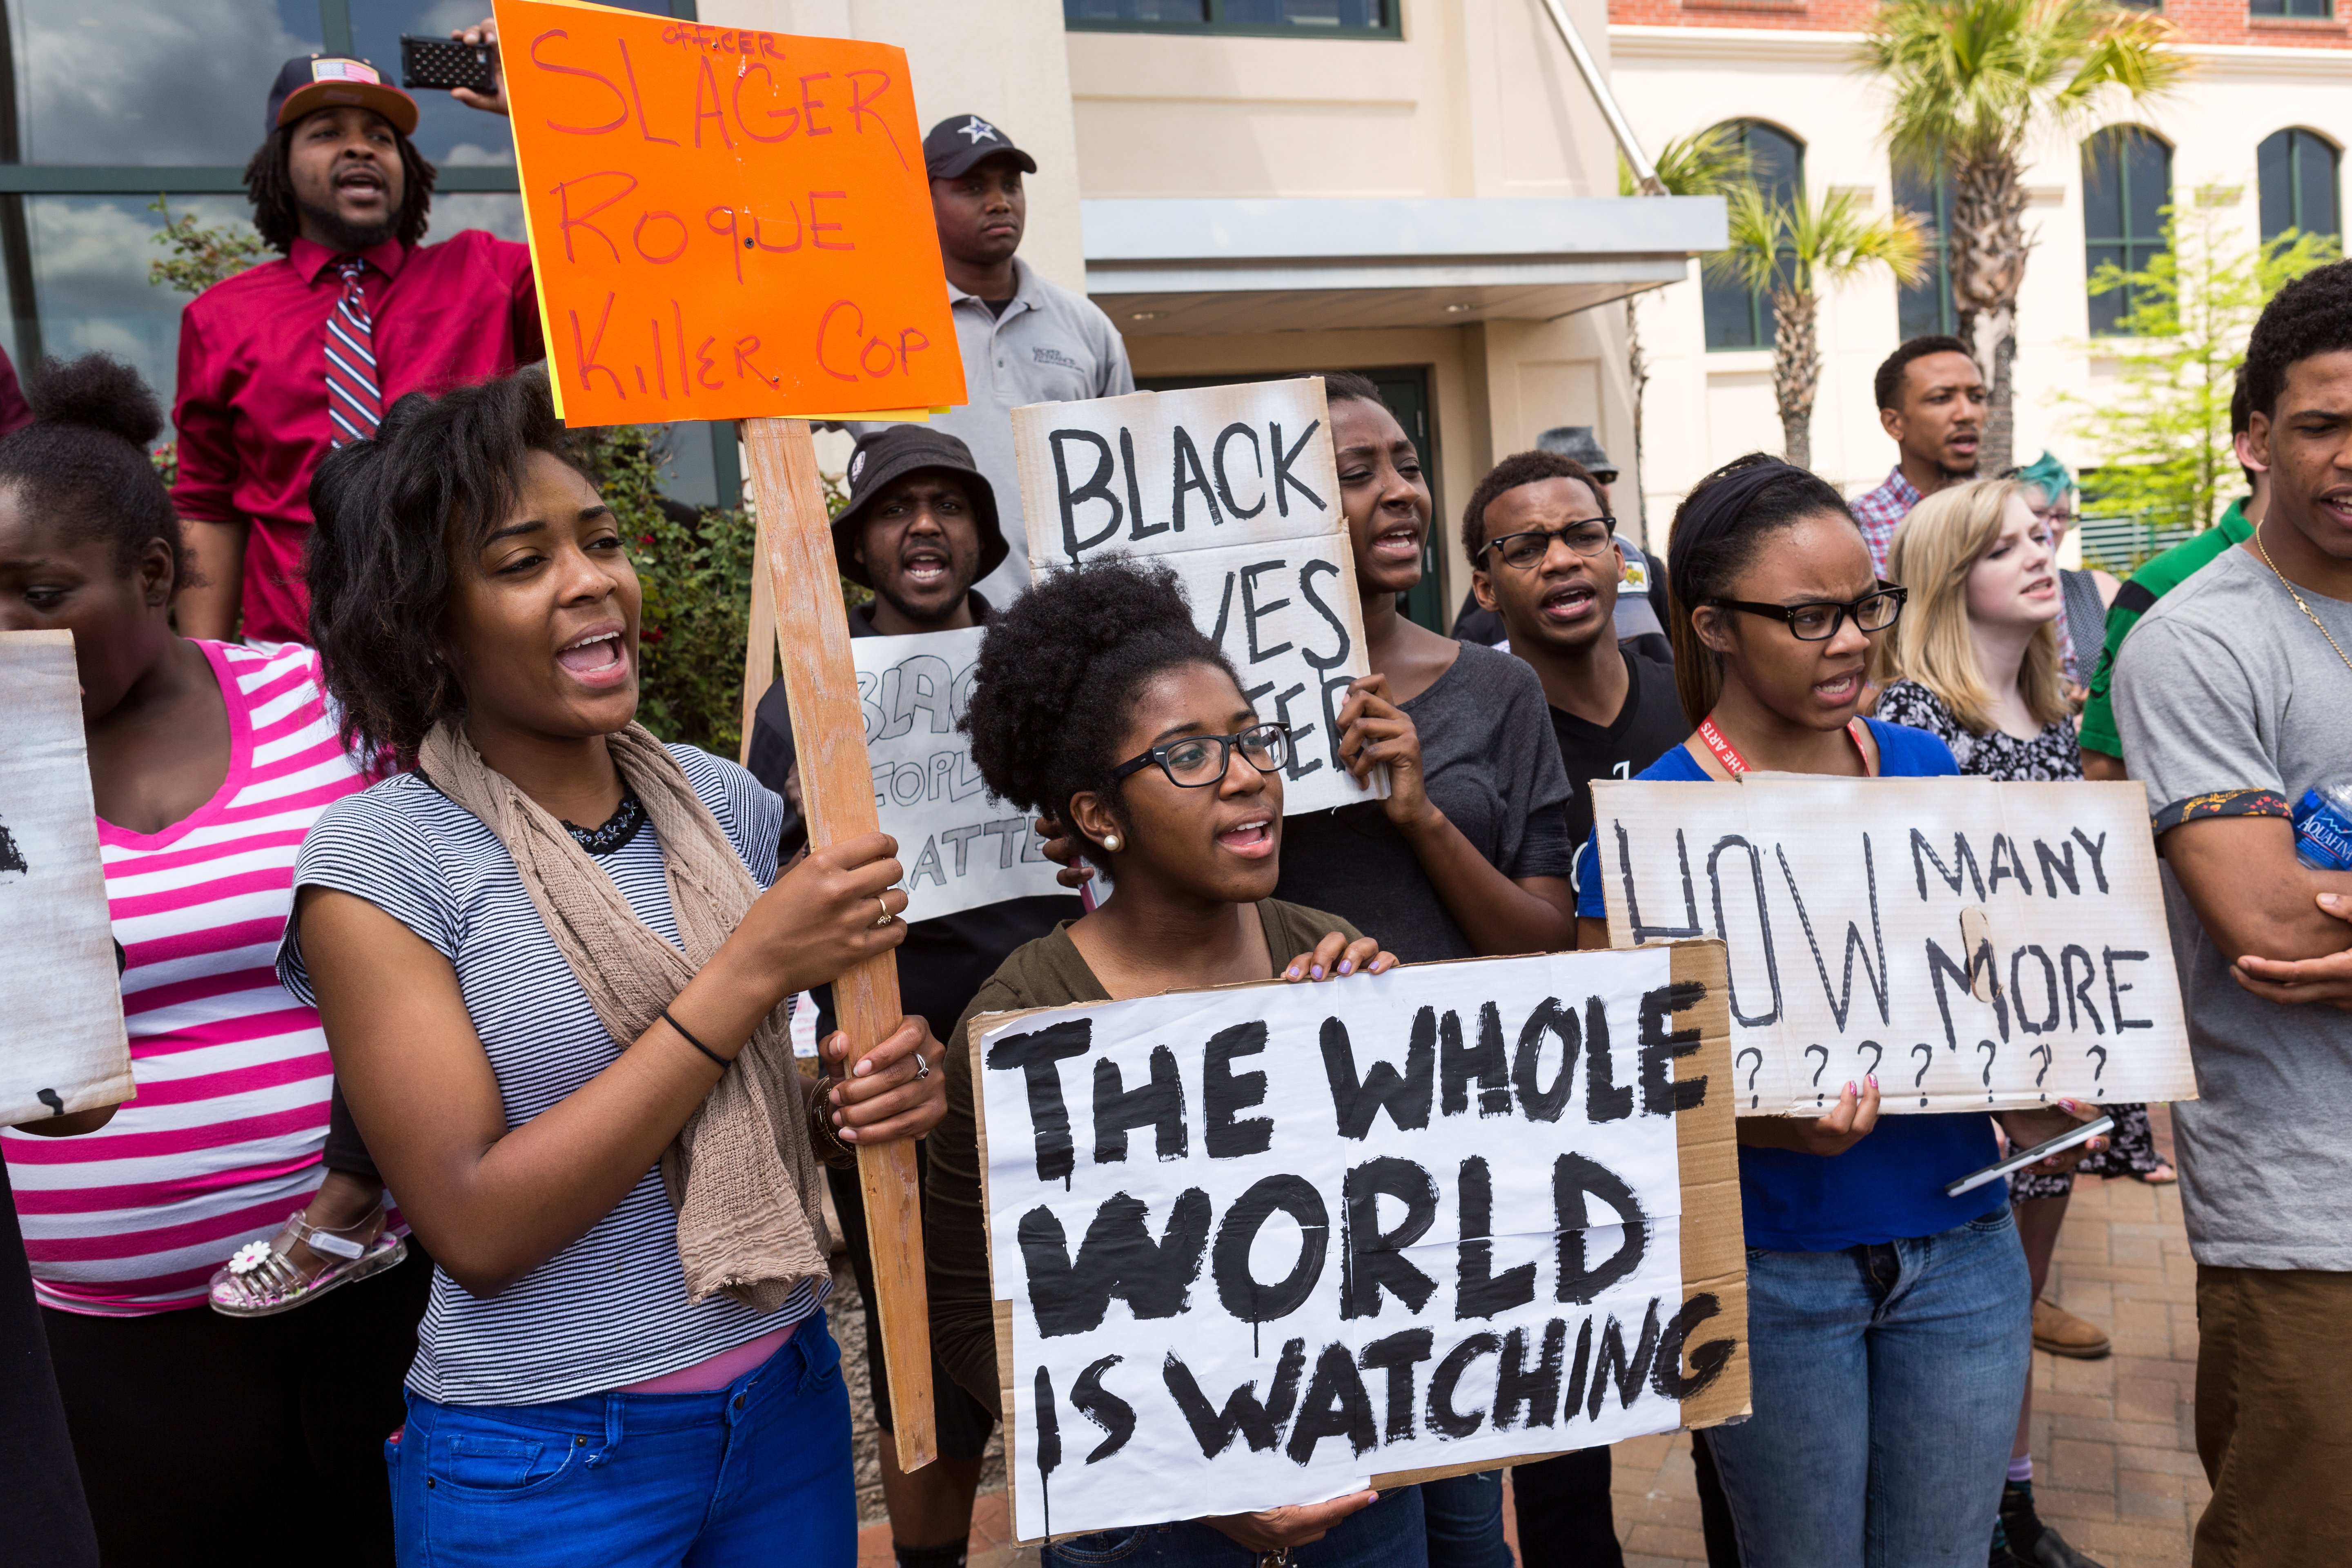 People participate in a rally to protest the death of Walter Scott, who was killed by police in a shooting, outside City Hall in North Charleston, S.C. on April 8, 2015.